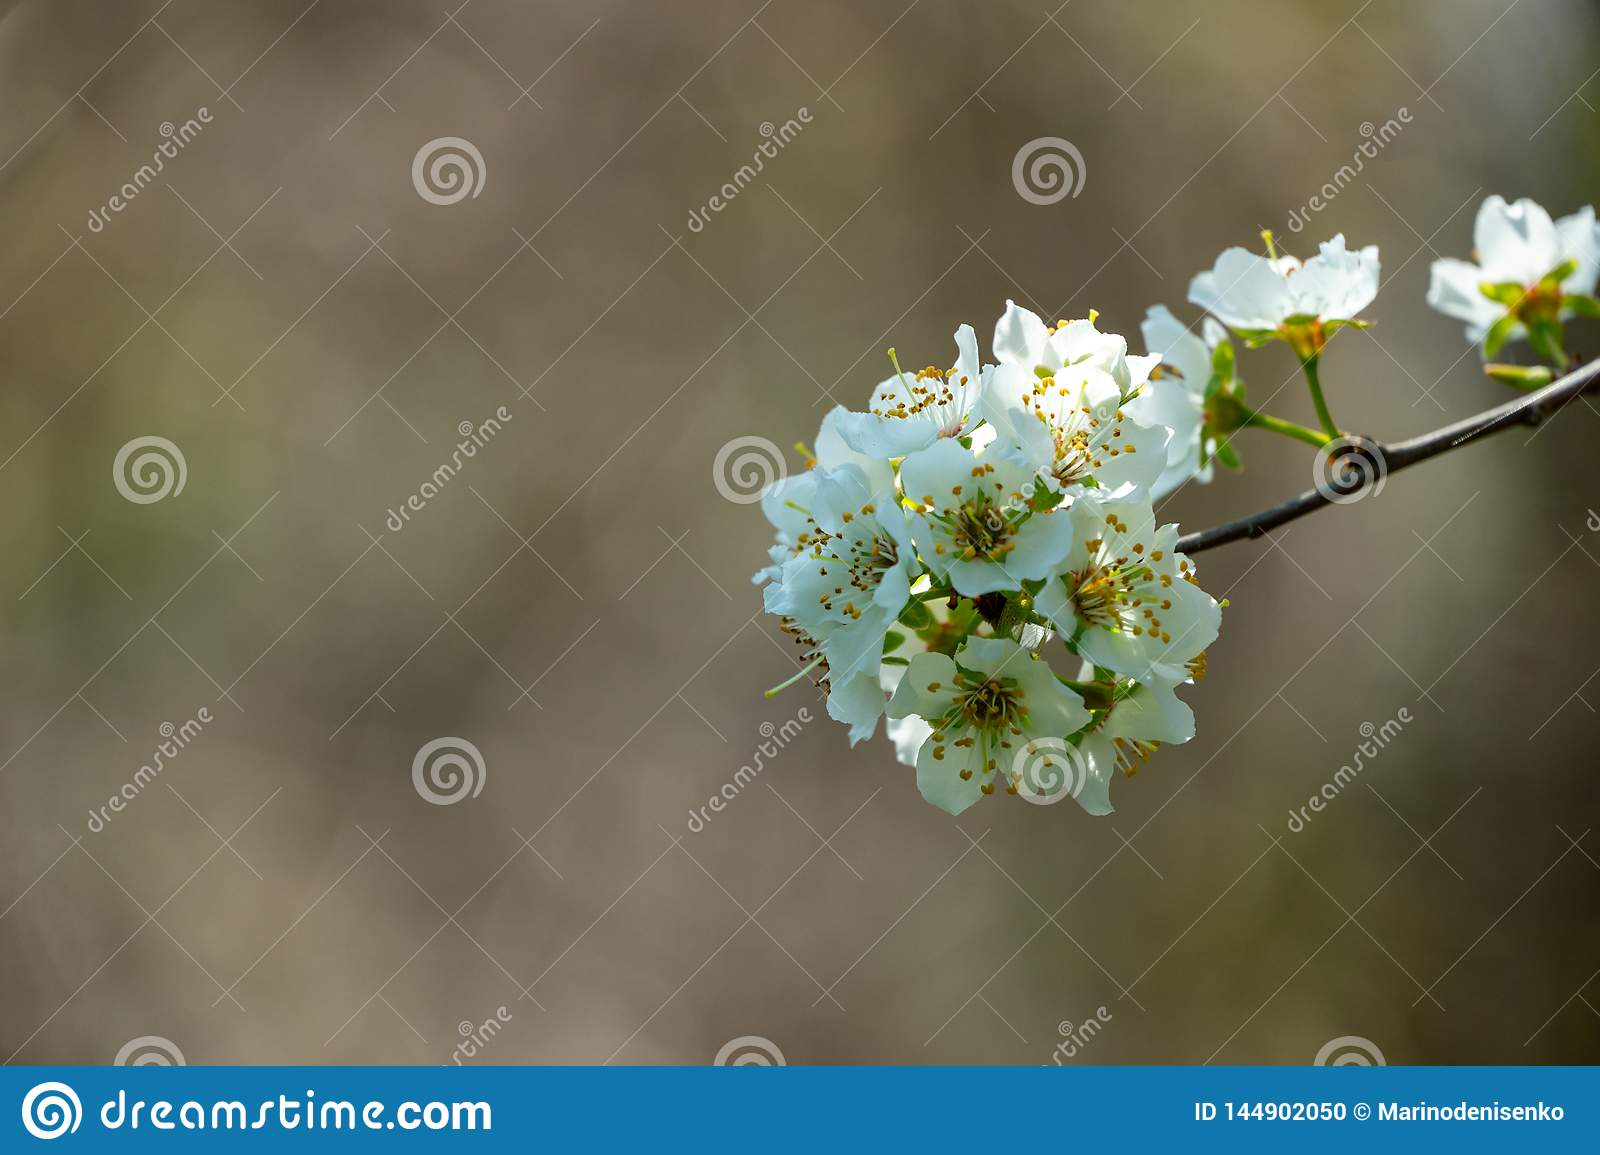 Close-up branch of white cherry plum flowers blossom in spring. Lot of white flowers in sunny spring day on gray blurred backgroun